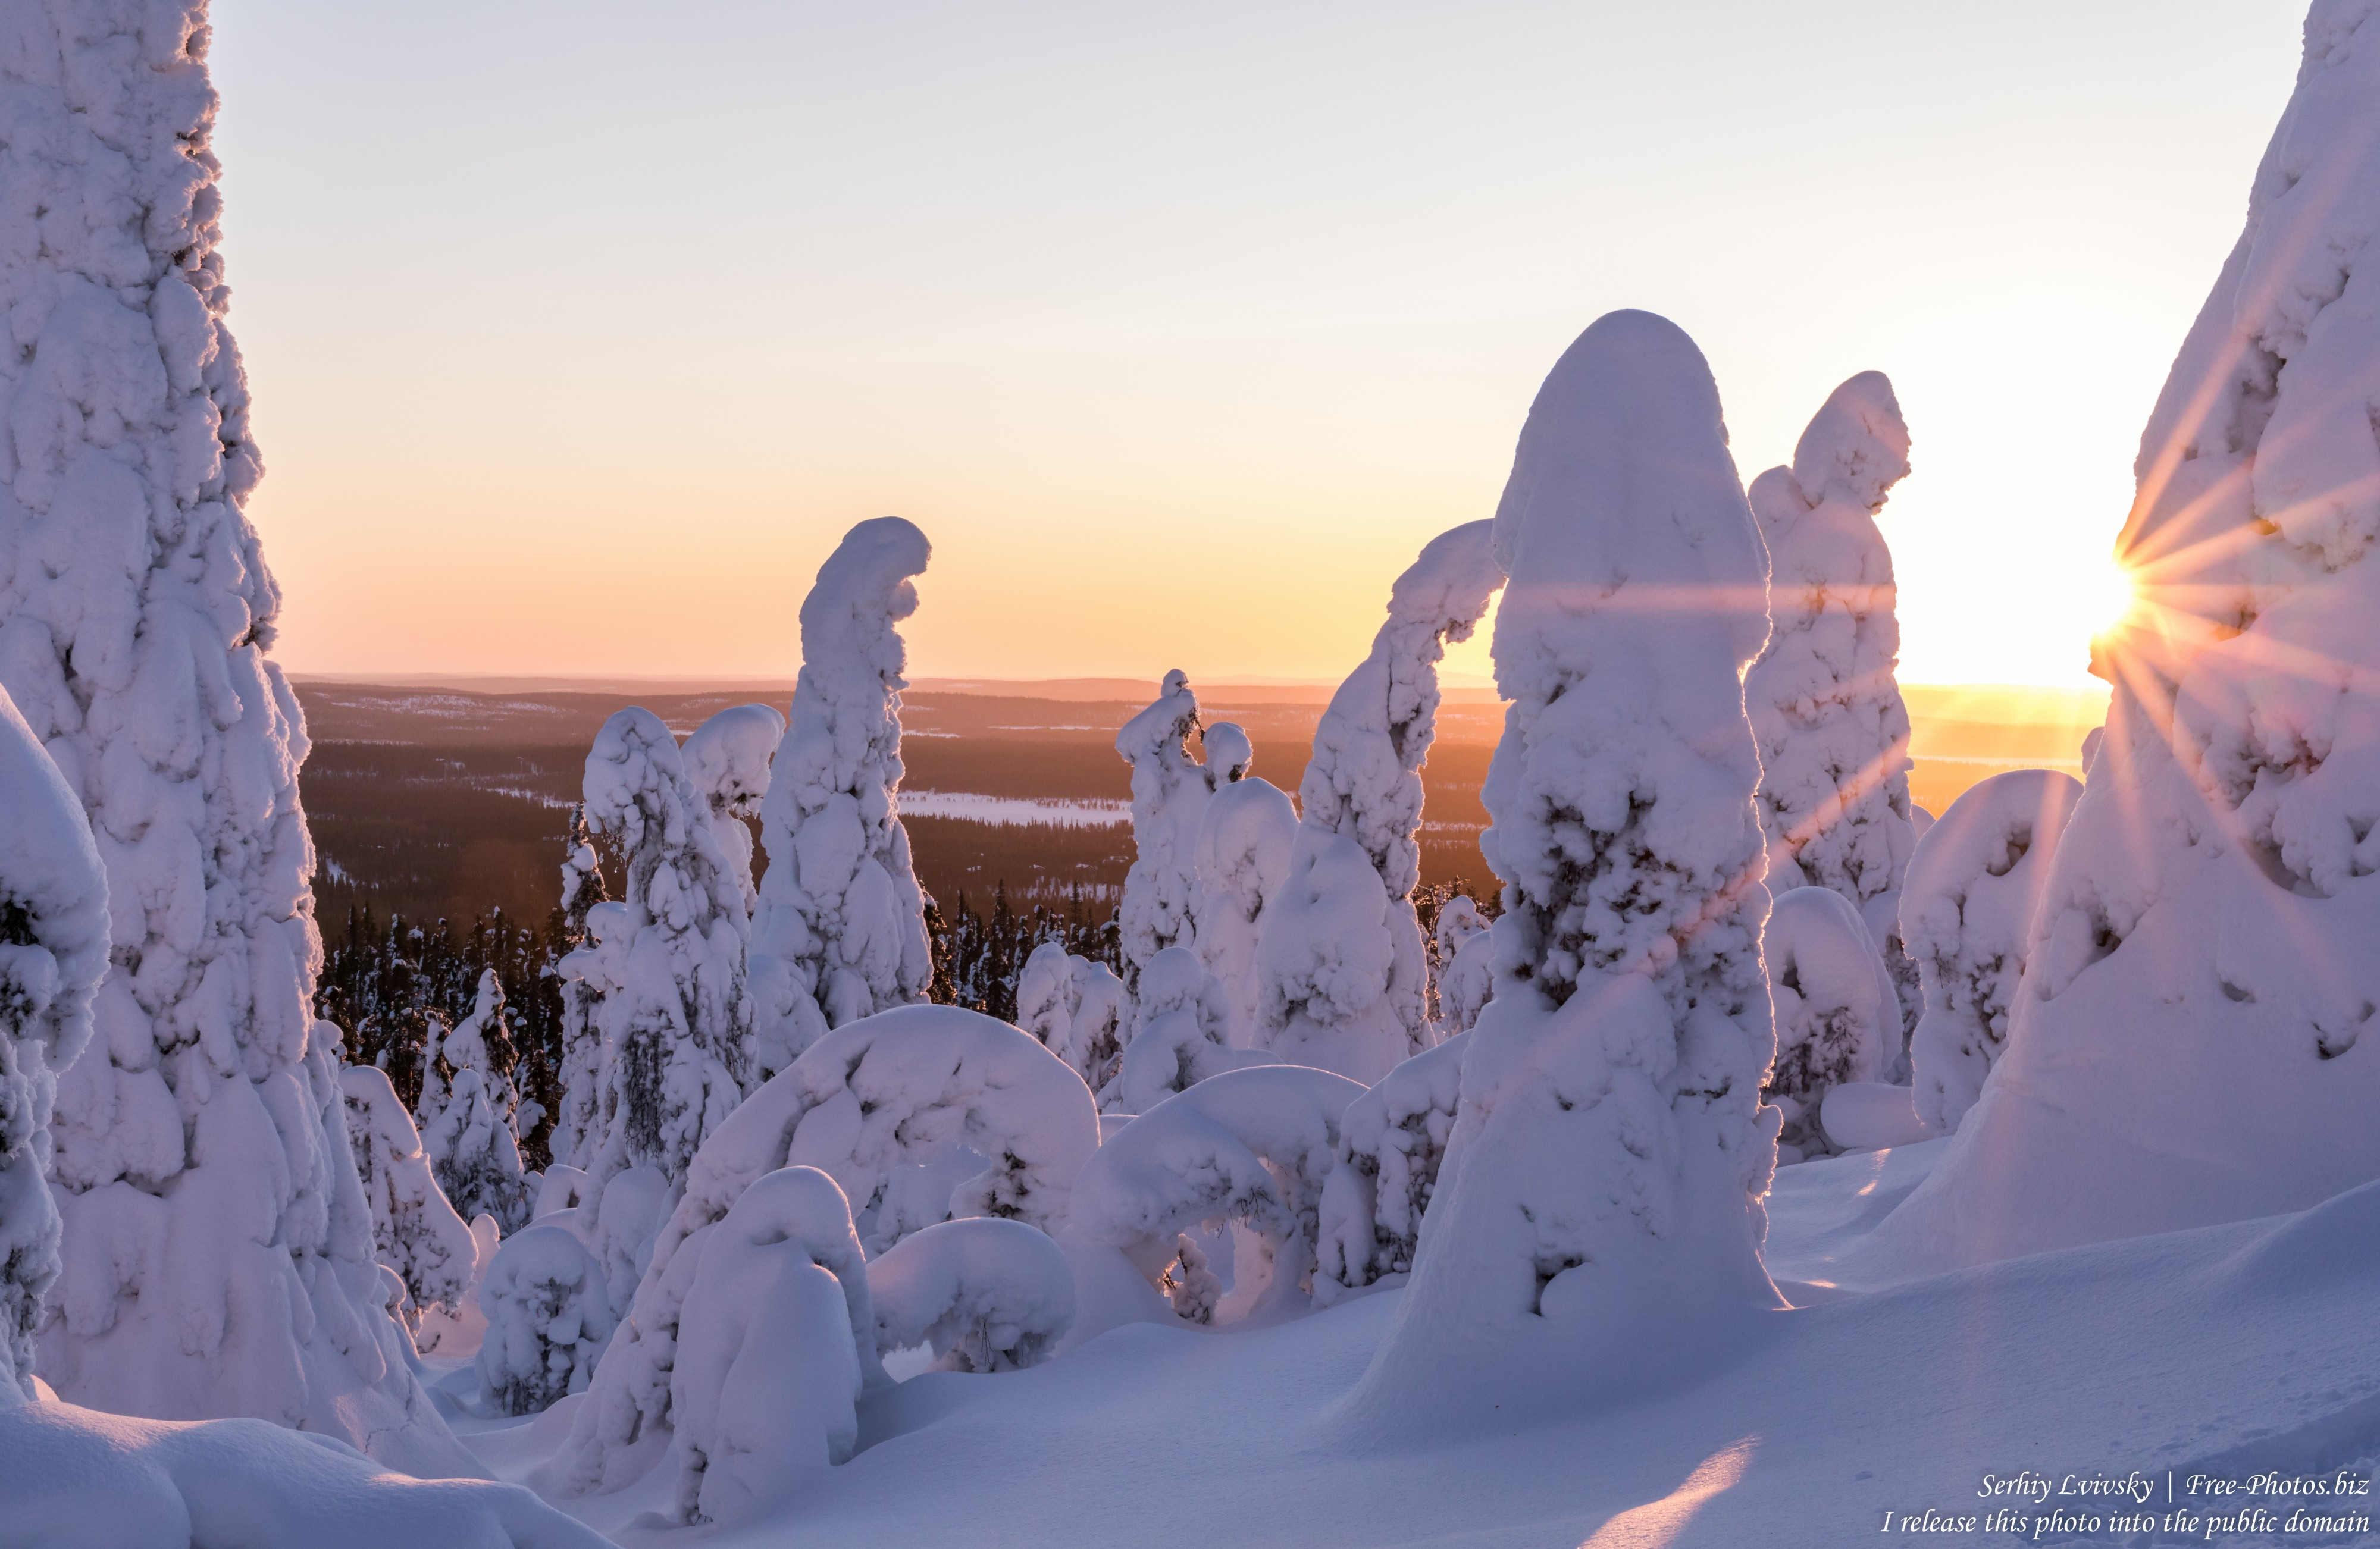 Valtavaara, Finland, photographed in January 2020 by Serhiy Lvivsky, picture 33